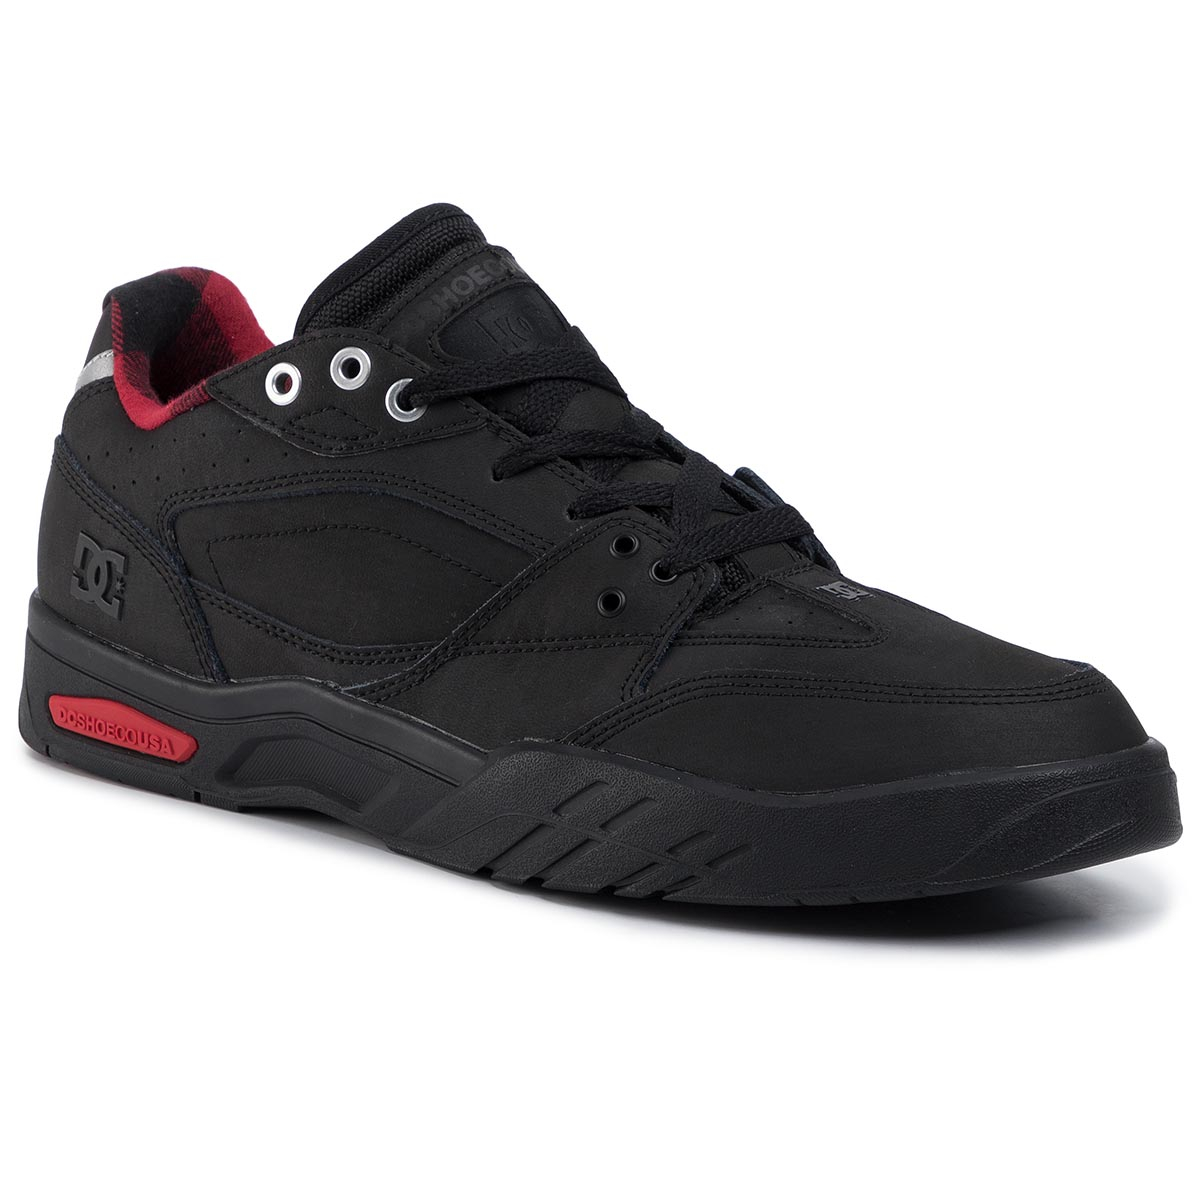 Sneakersy DC - Maswell Wnt ADYS100581 Black/Red (Blr)